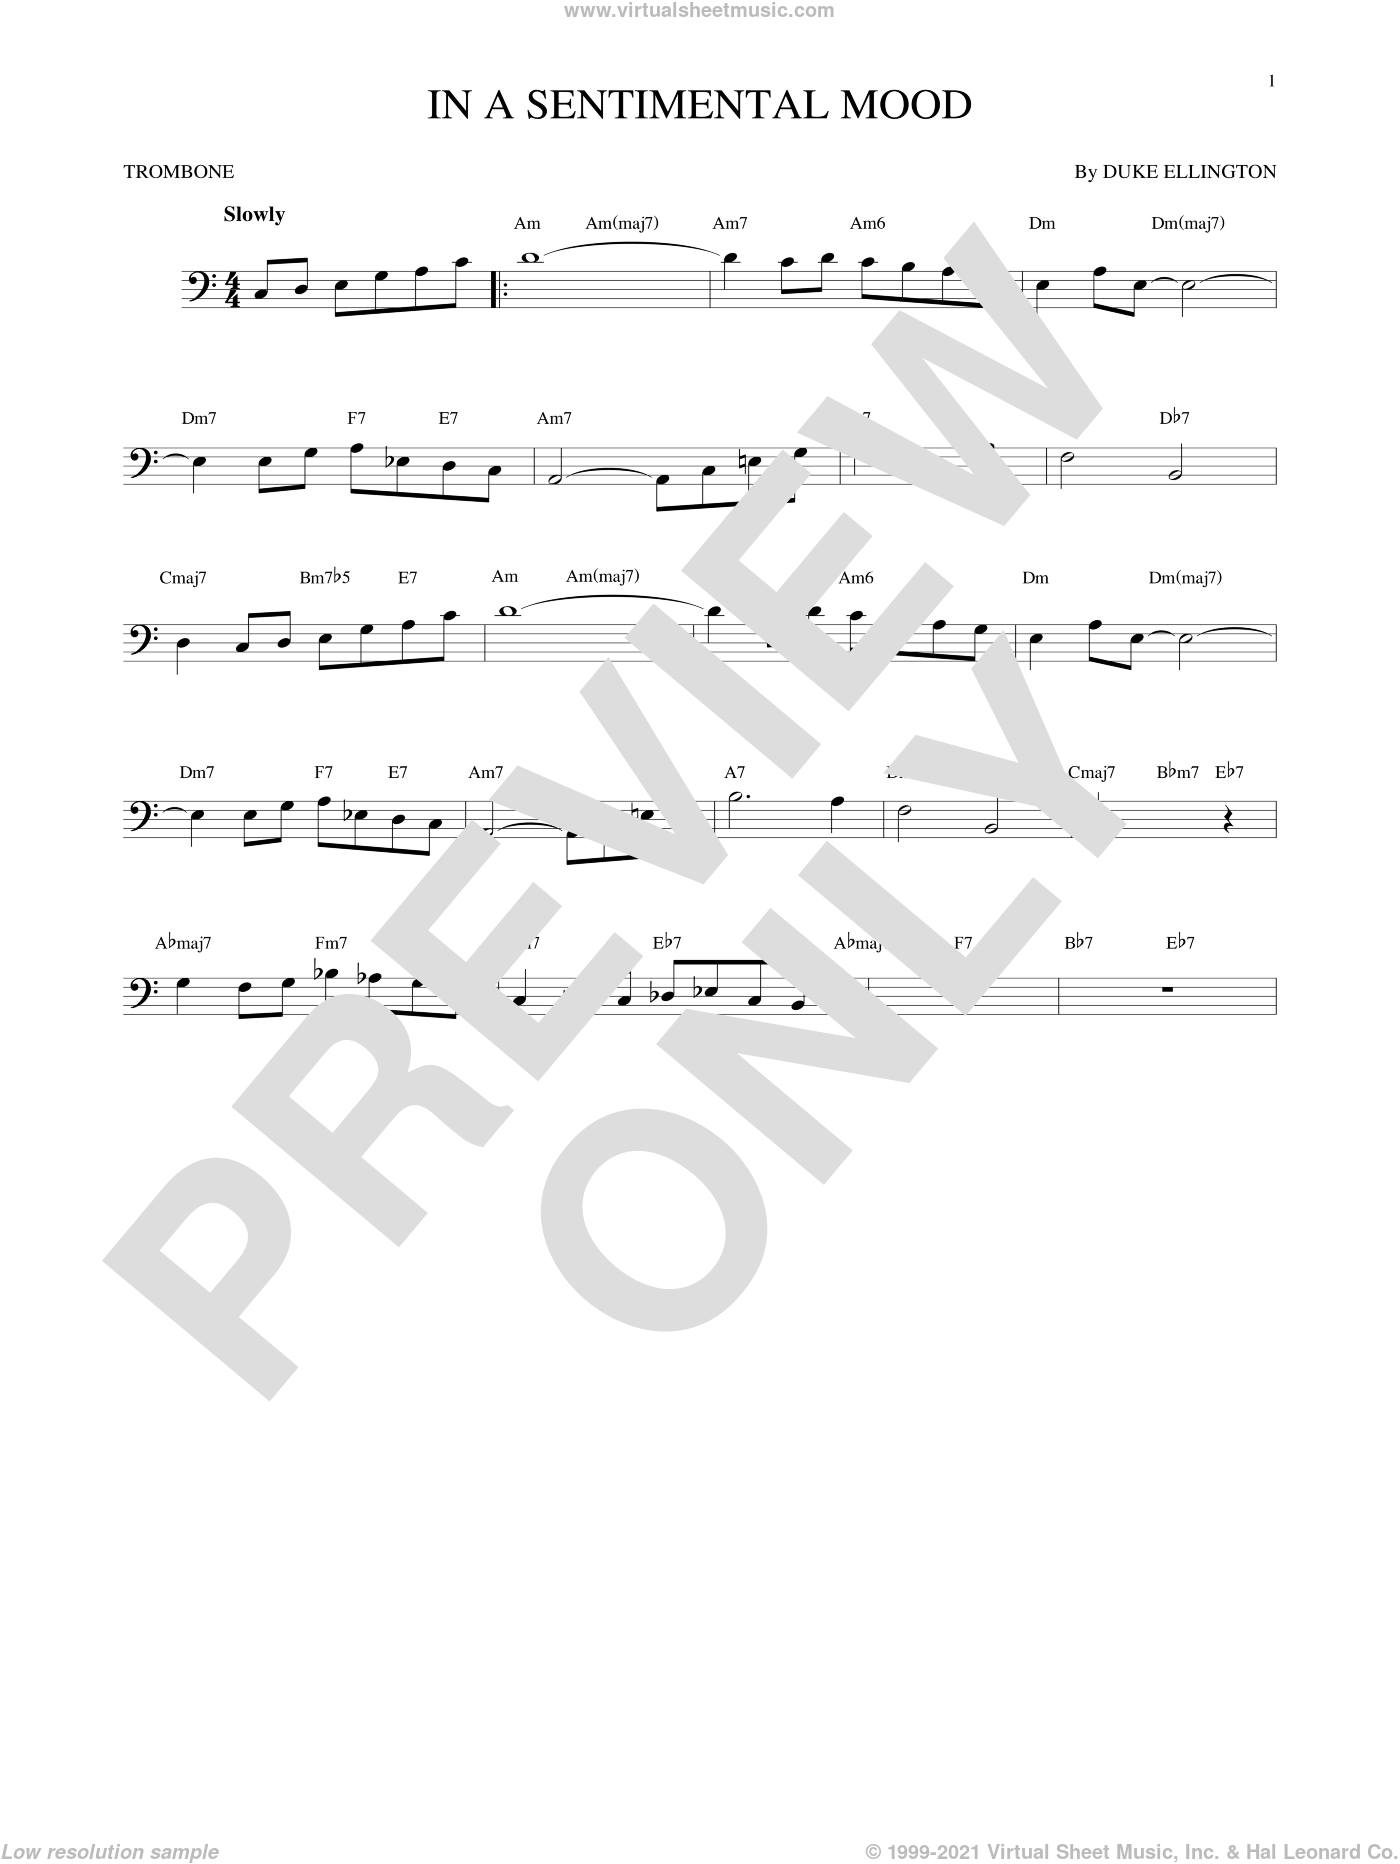 In A Sentimental Mood sheet music for trombone solo by Duke Ellington, Irving Mills and Manny Kurtz, intermediate skill level